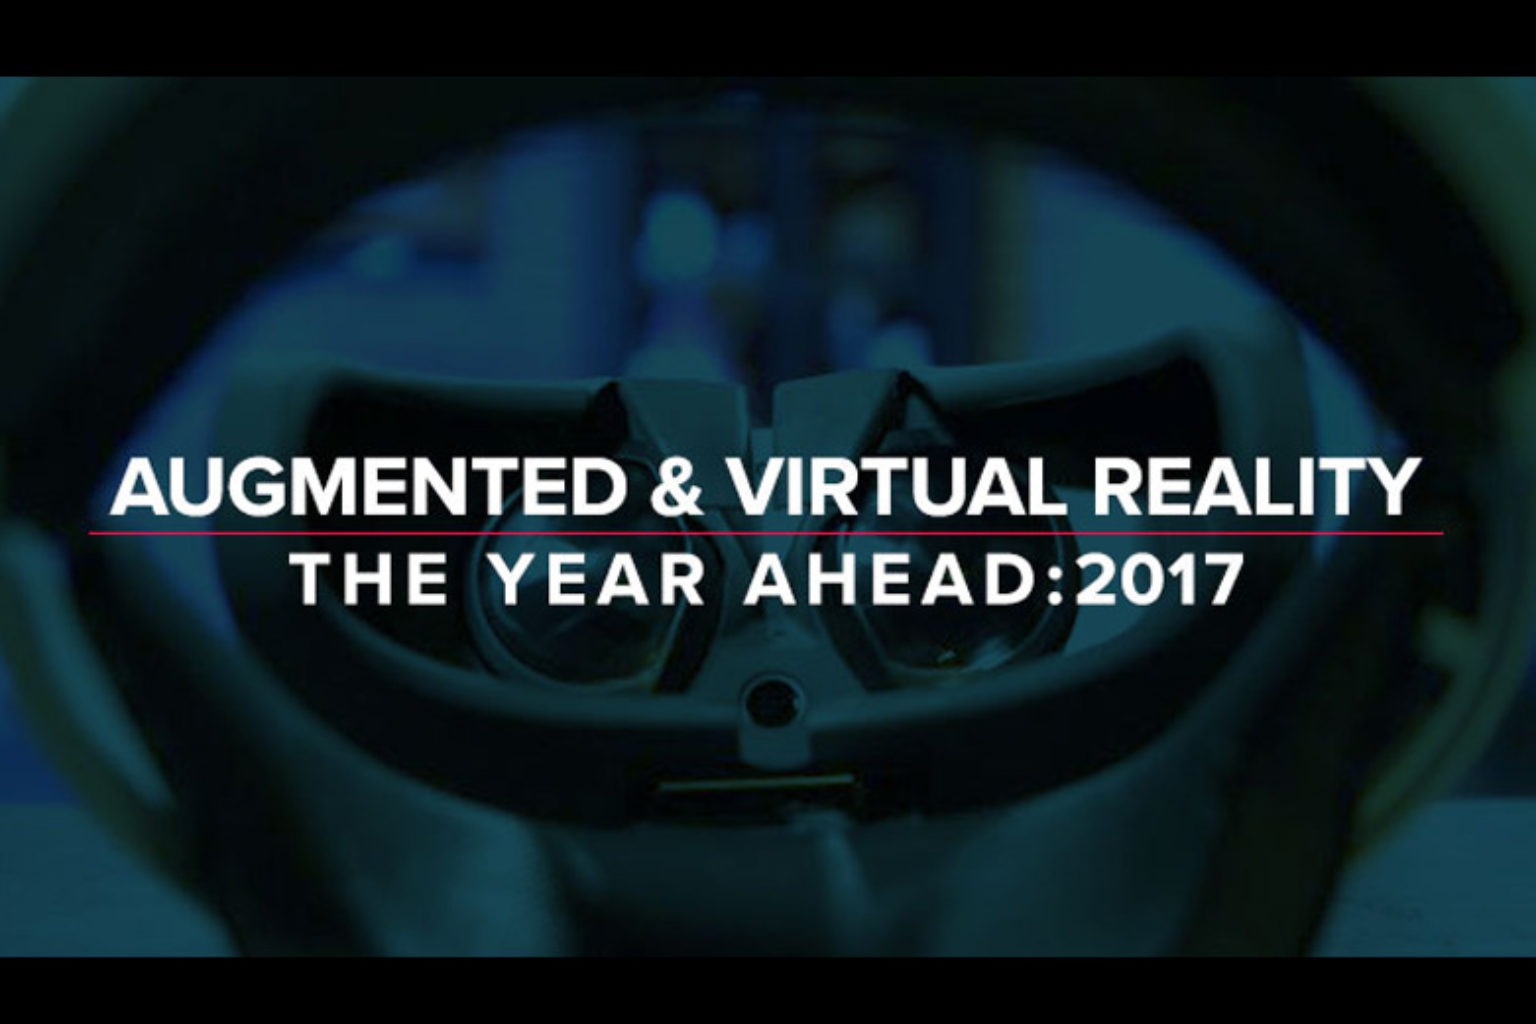 What are the top Virtual Reality and Augmented Reality technology trends for 2017?